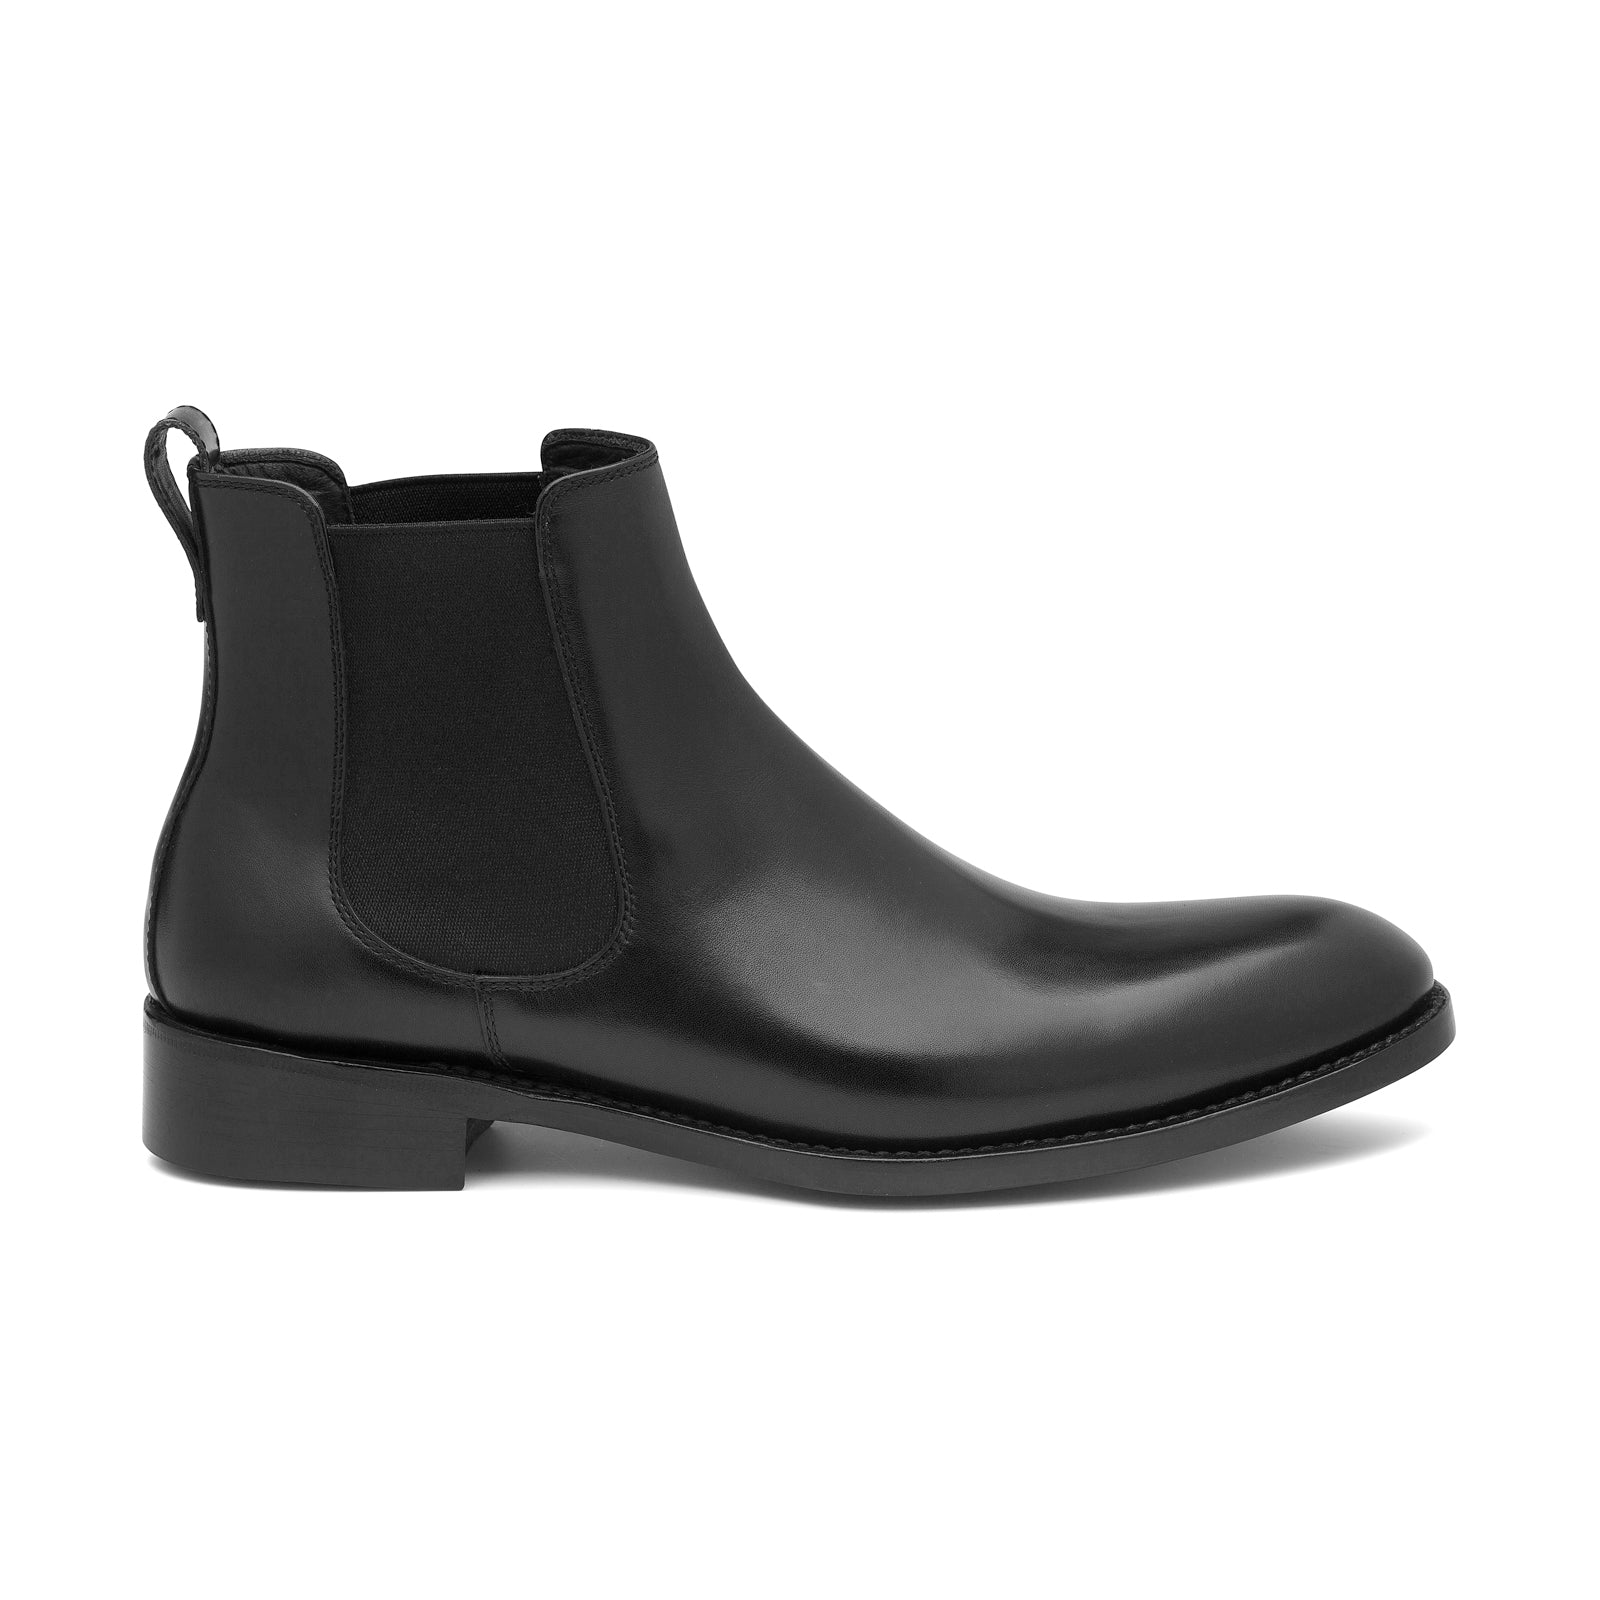 Walter Leather Chelsea Boots Salle Priv qIhhfgfGR